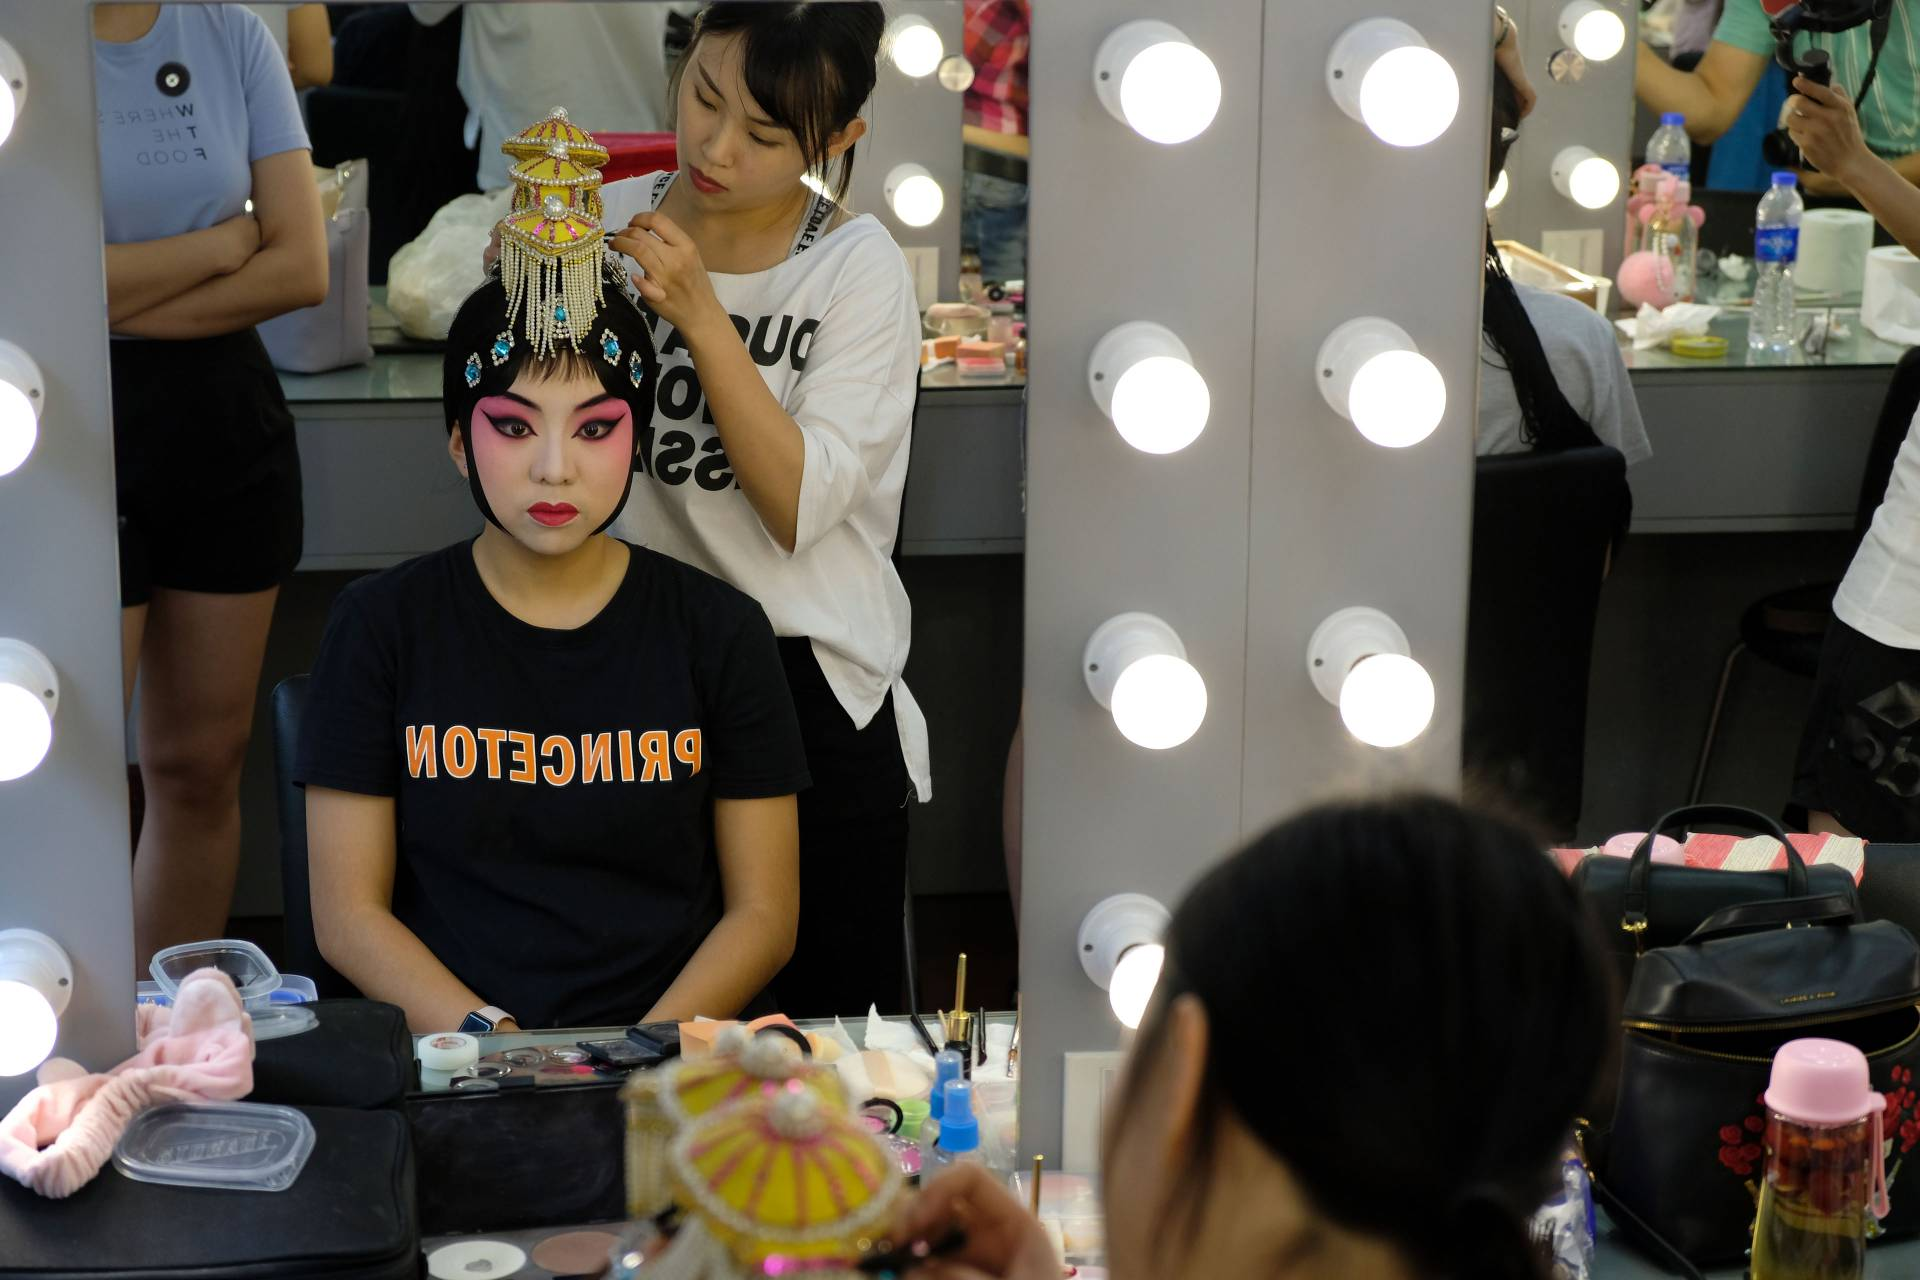 Reflection in mirror of student having makeup applied